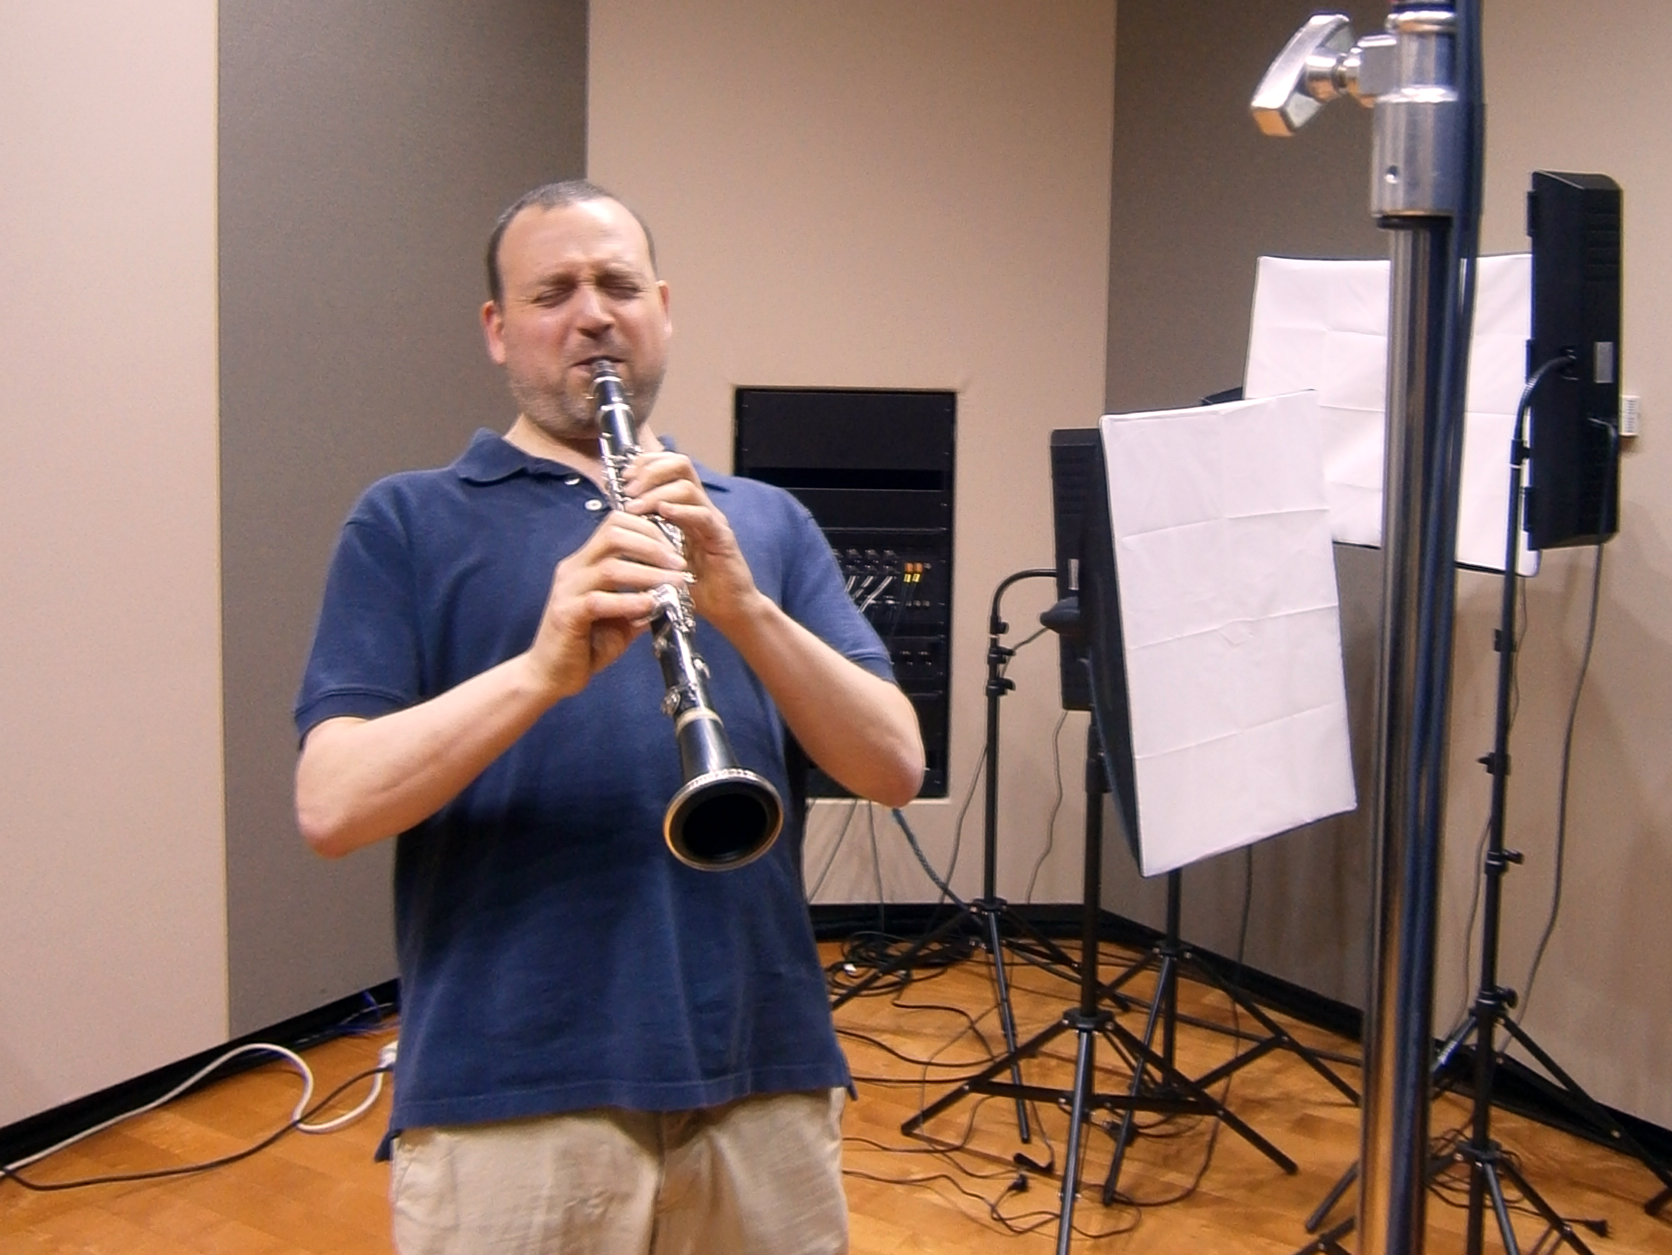 Photo: Derek Bermel in the CPR Performance Studio